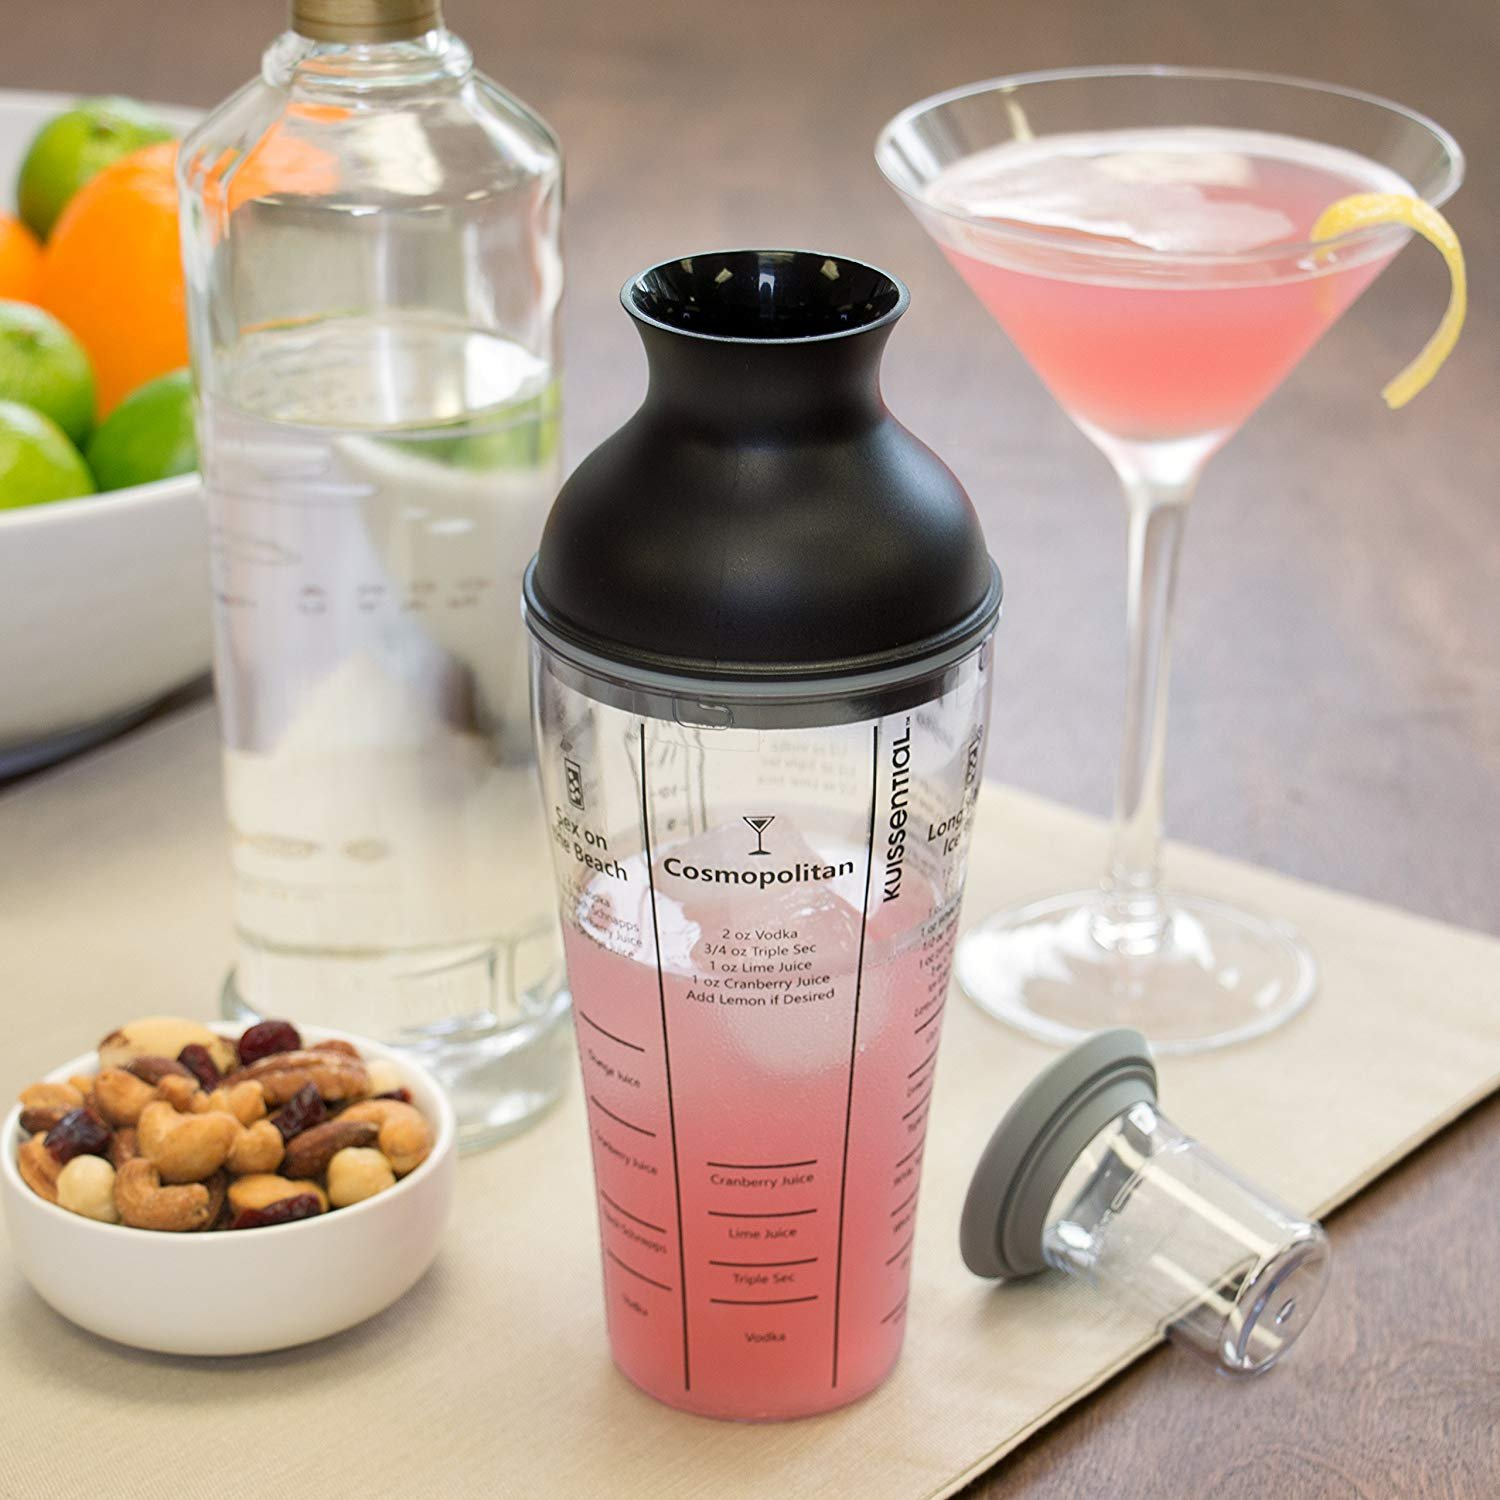 Recipe Cocktail Shaker 16oz Includes 6 Mixed Drink Recipes Jigger Strainer